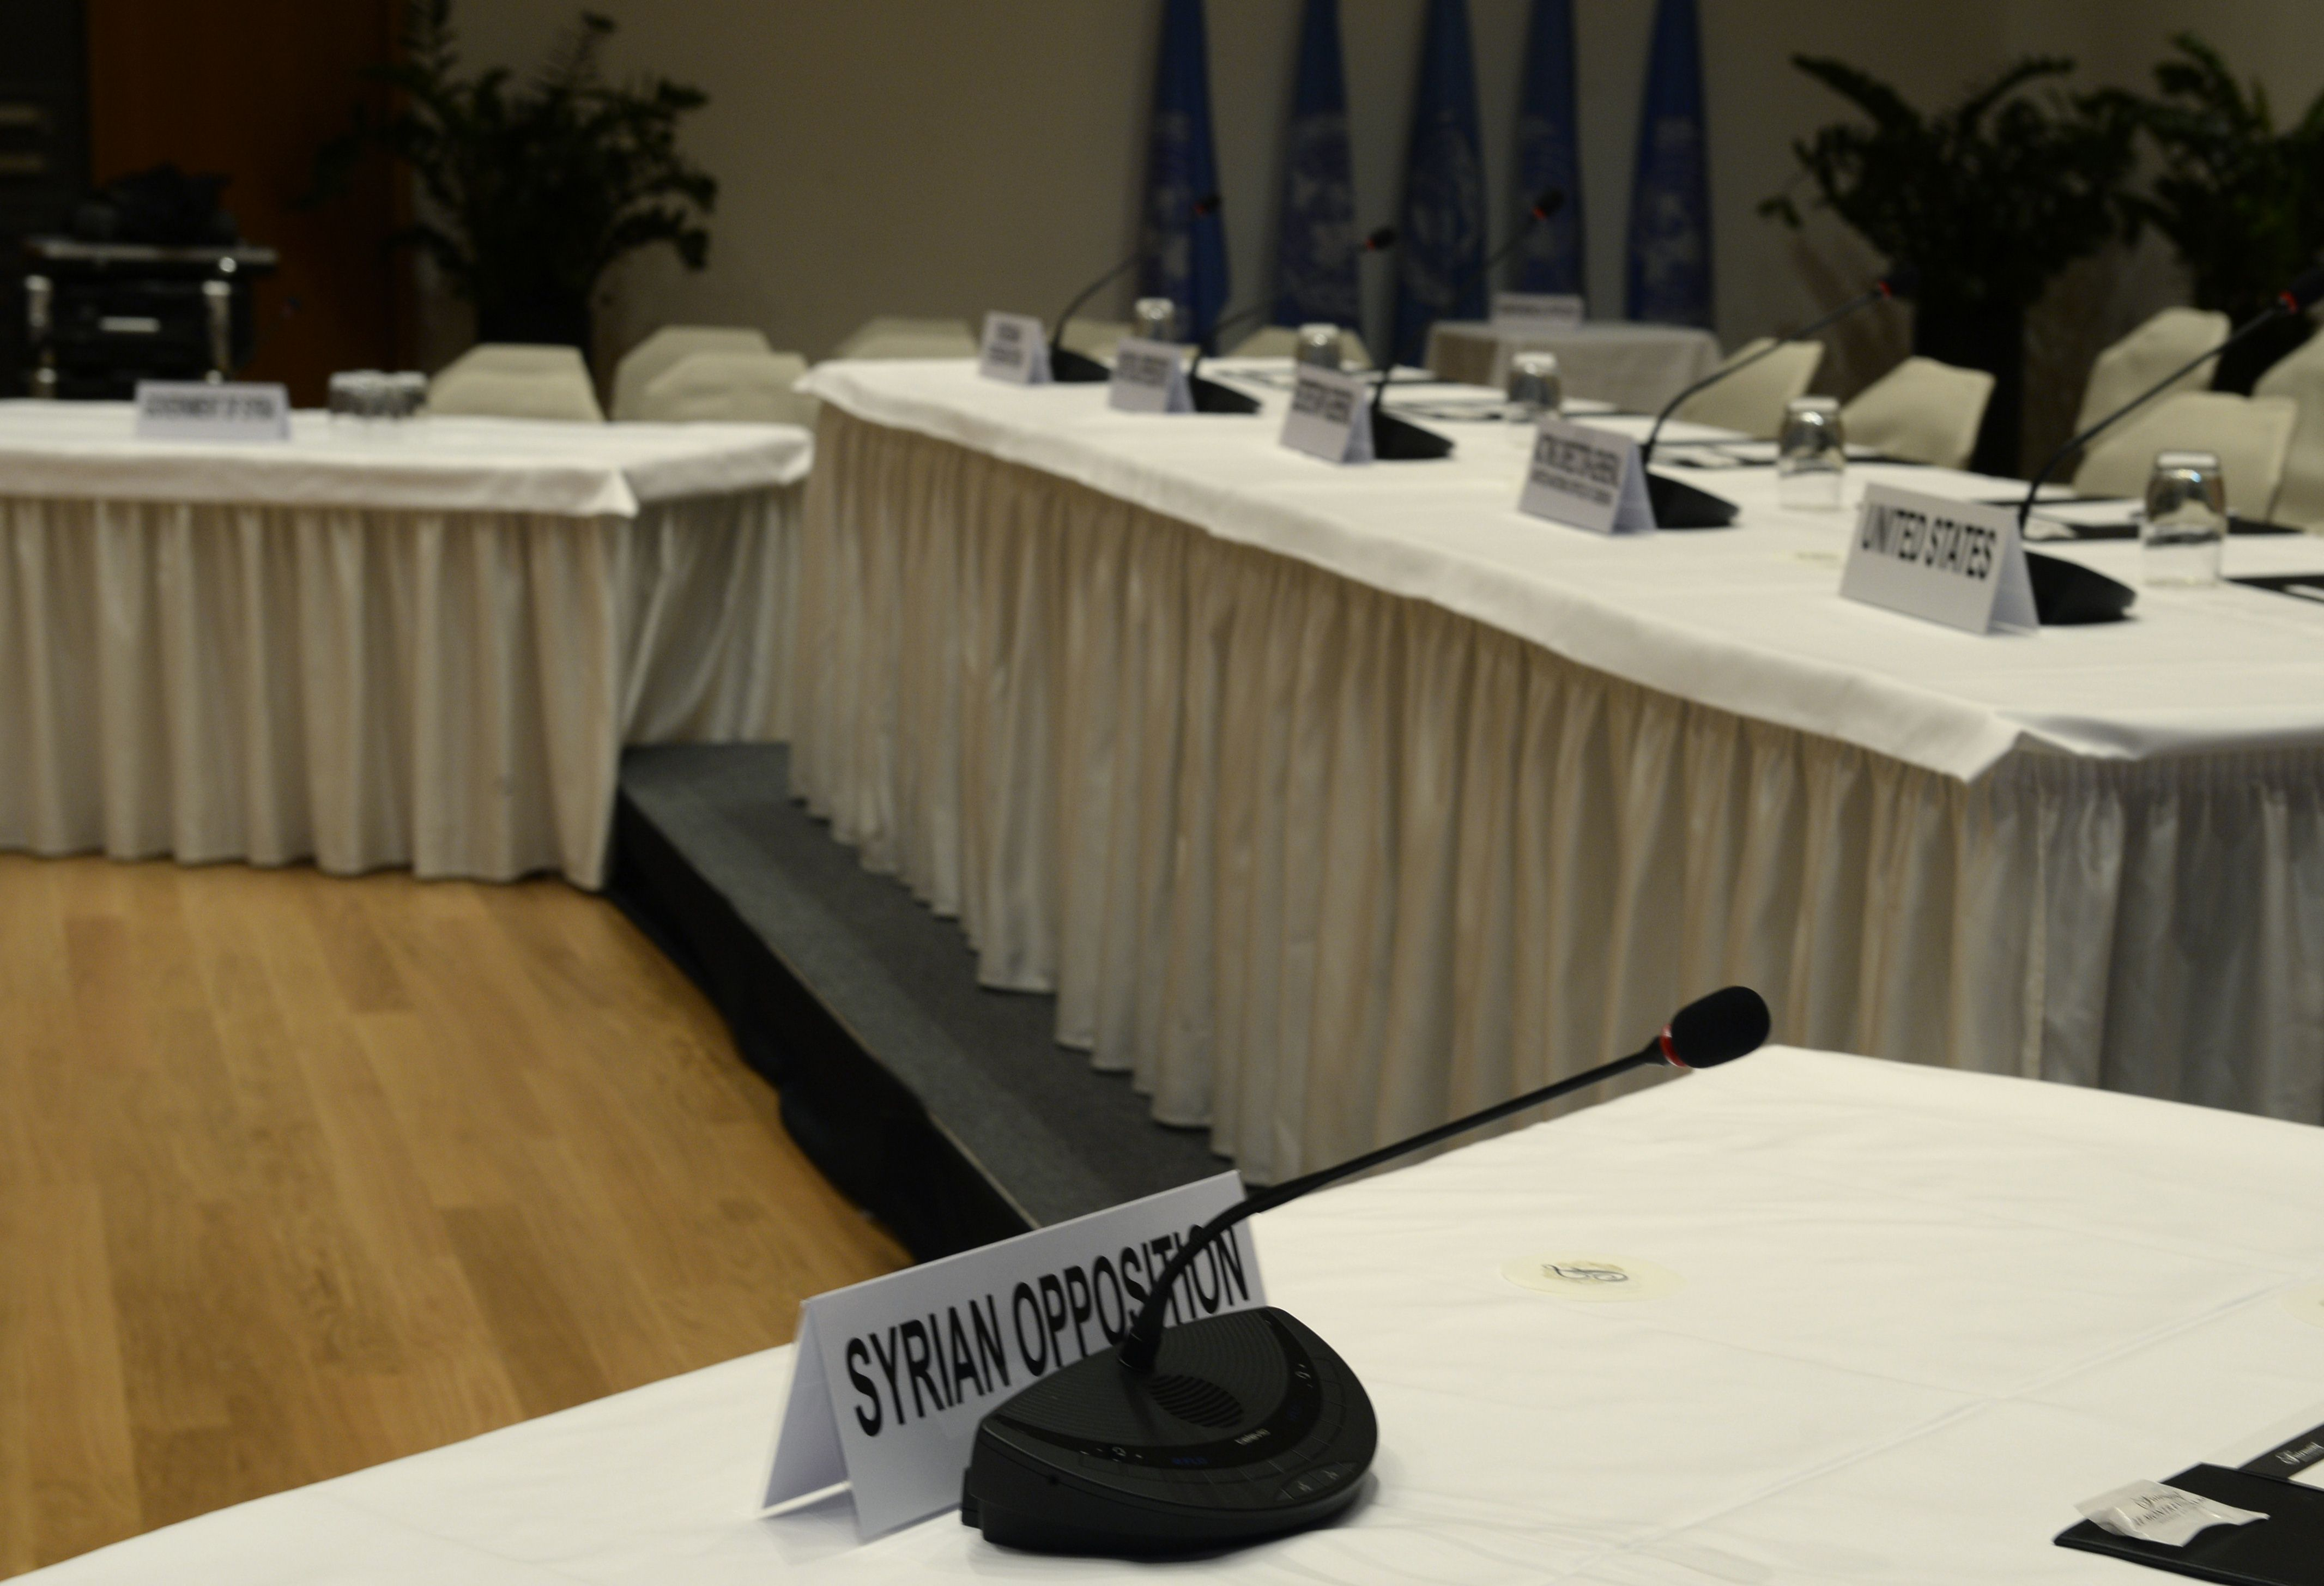 """A picture taken on January 20, 2014 in Montreux shows the place of the Syrian opposition representative in the Syria peace conference room at the conference centre """"Le Petit Palace"""" as part of the Montreux-Palace, the hotel that will host from wednesday the so-called Geneva II peace talks.        (AFP PHOTO/PHILIPPE DESMAZES)"""